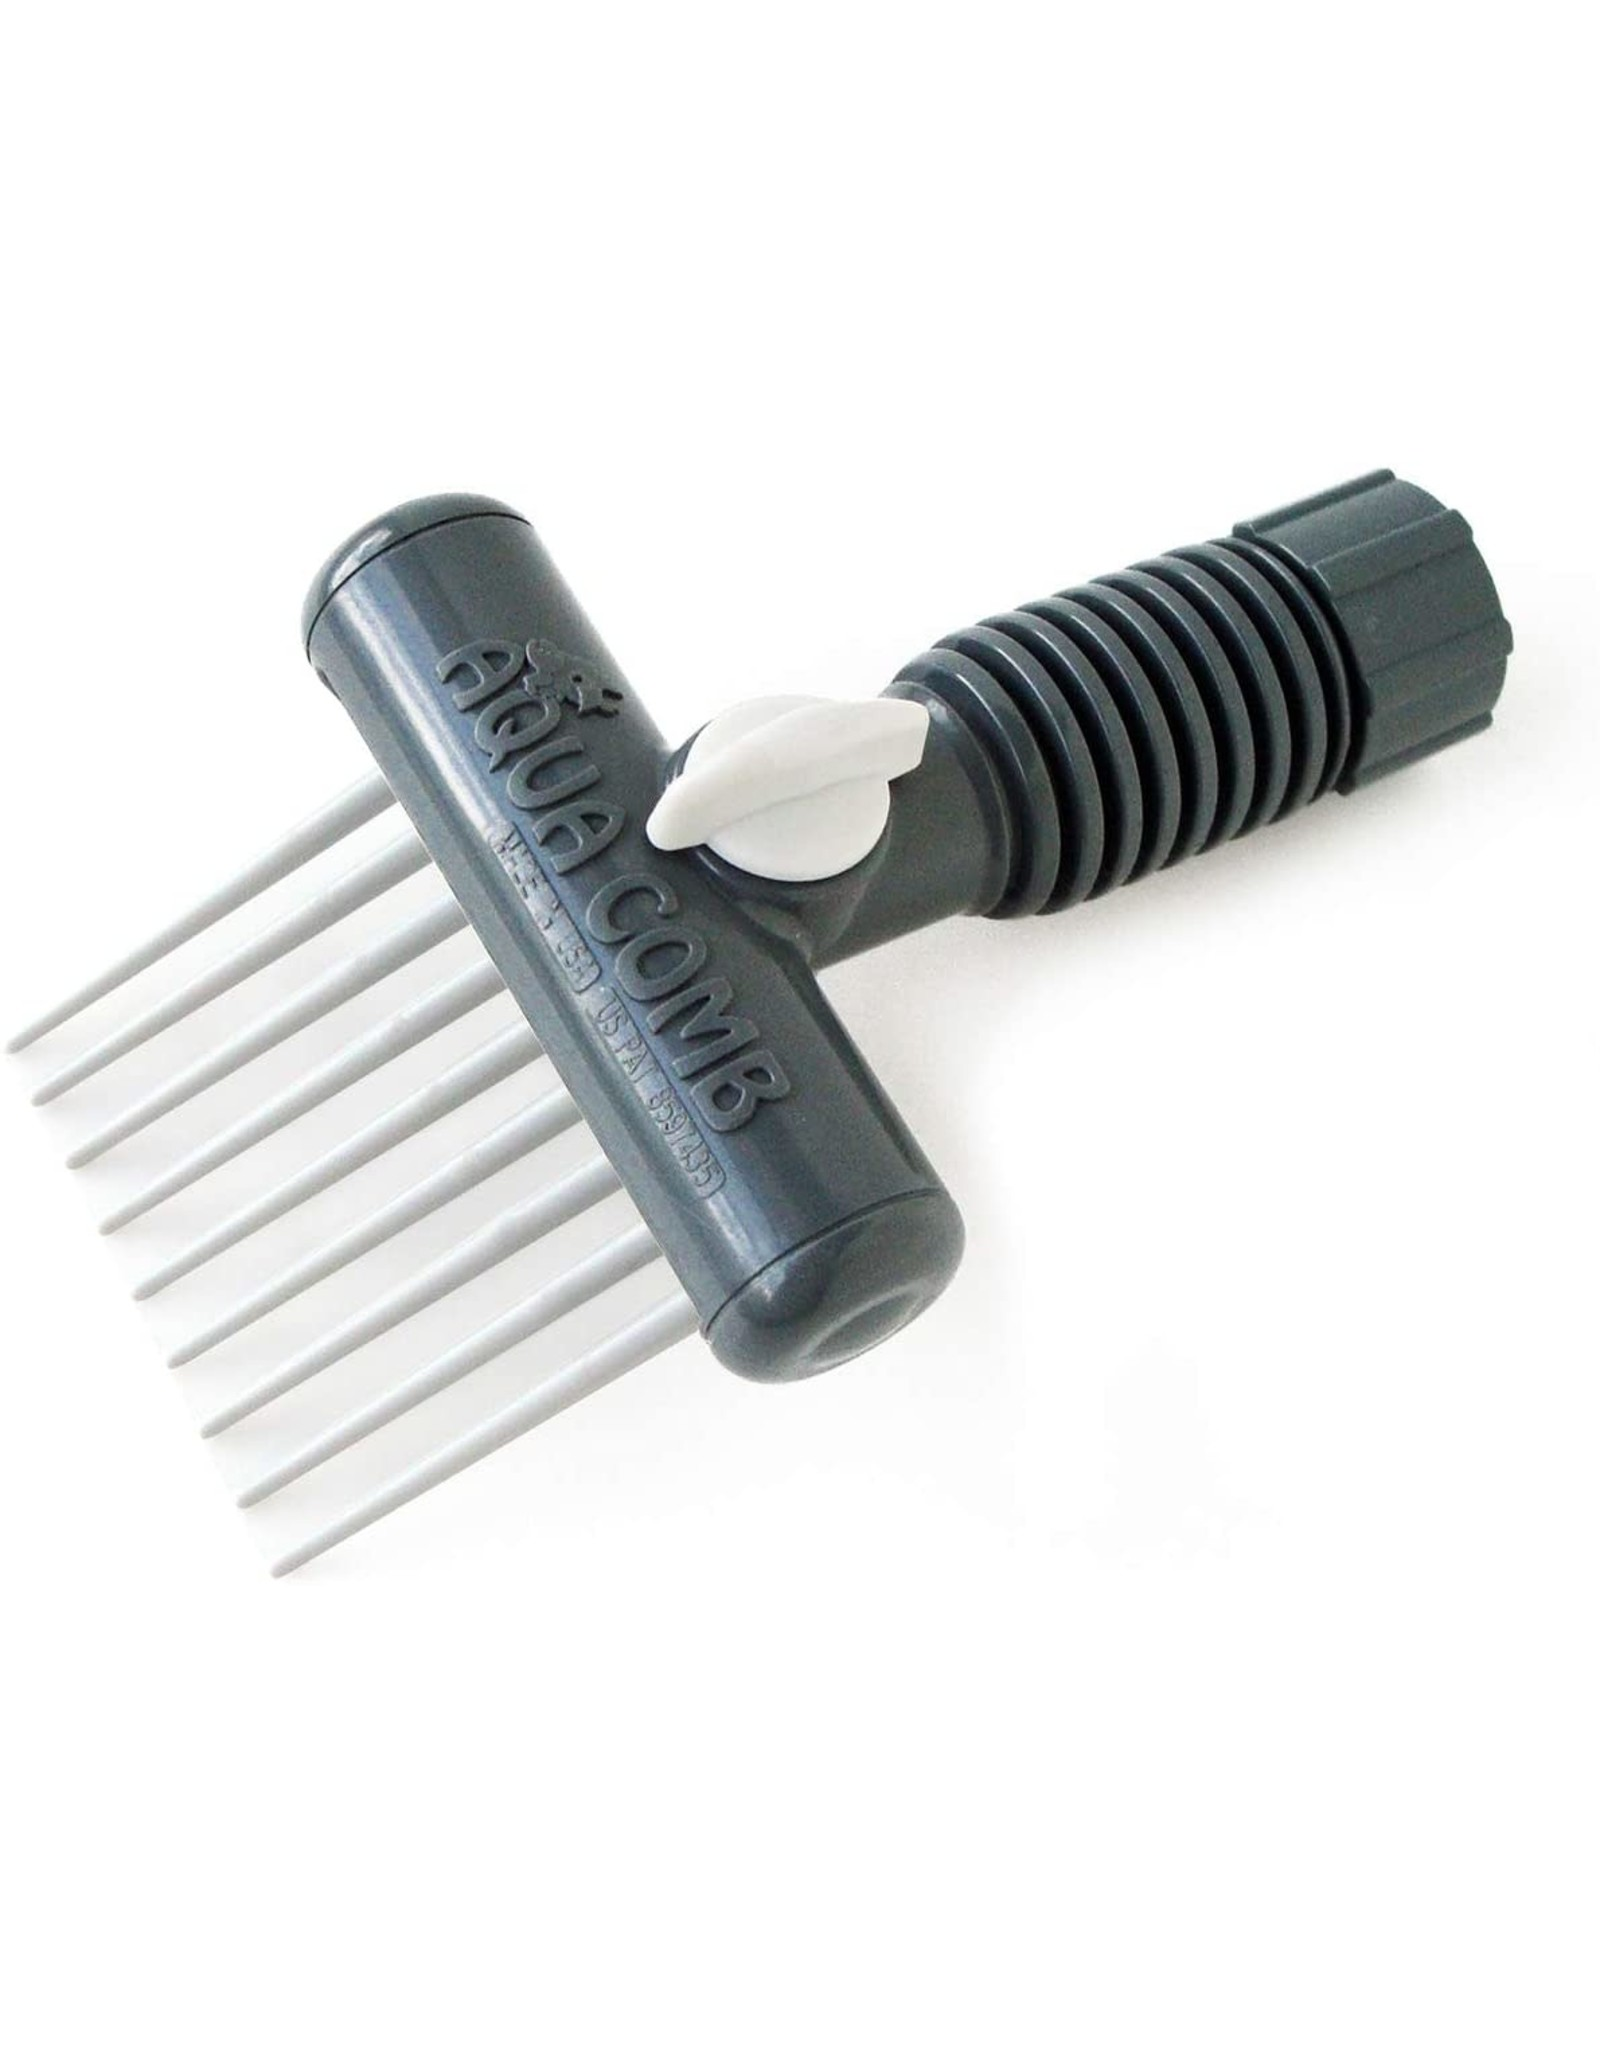 MI-WAY INC. AQUA COMB